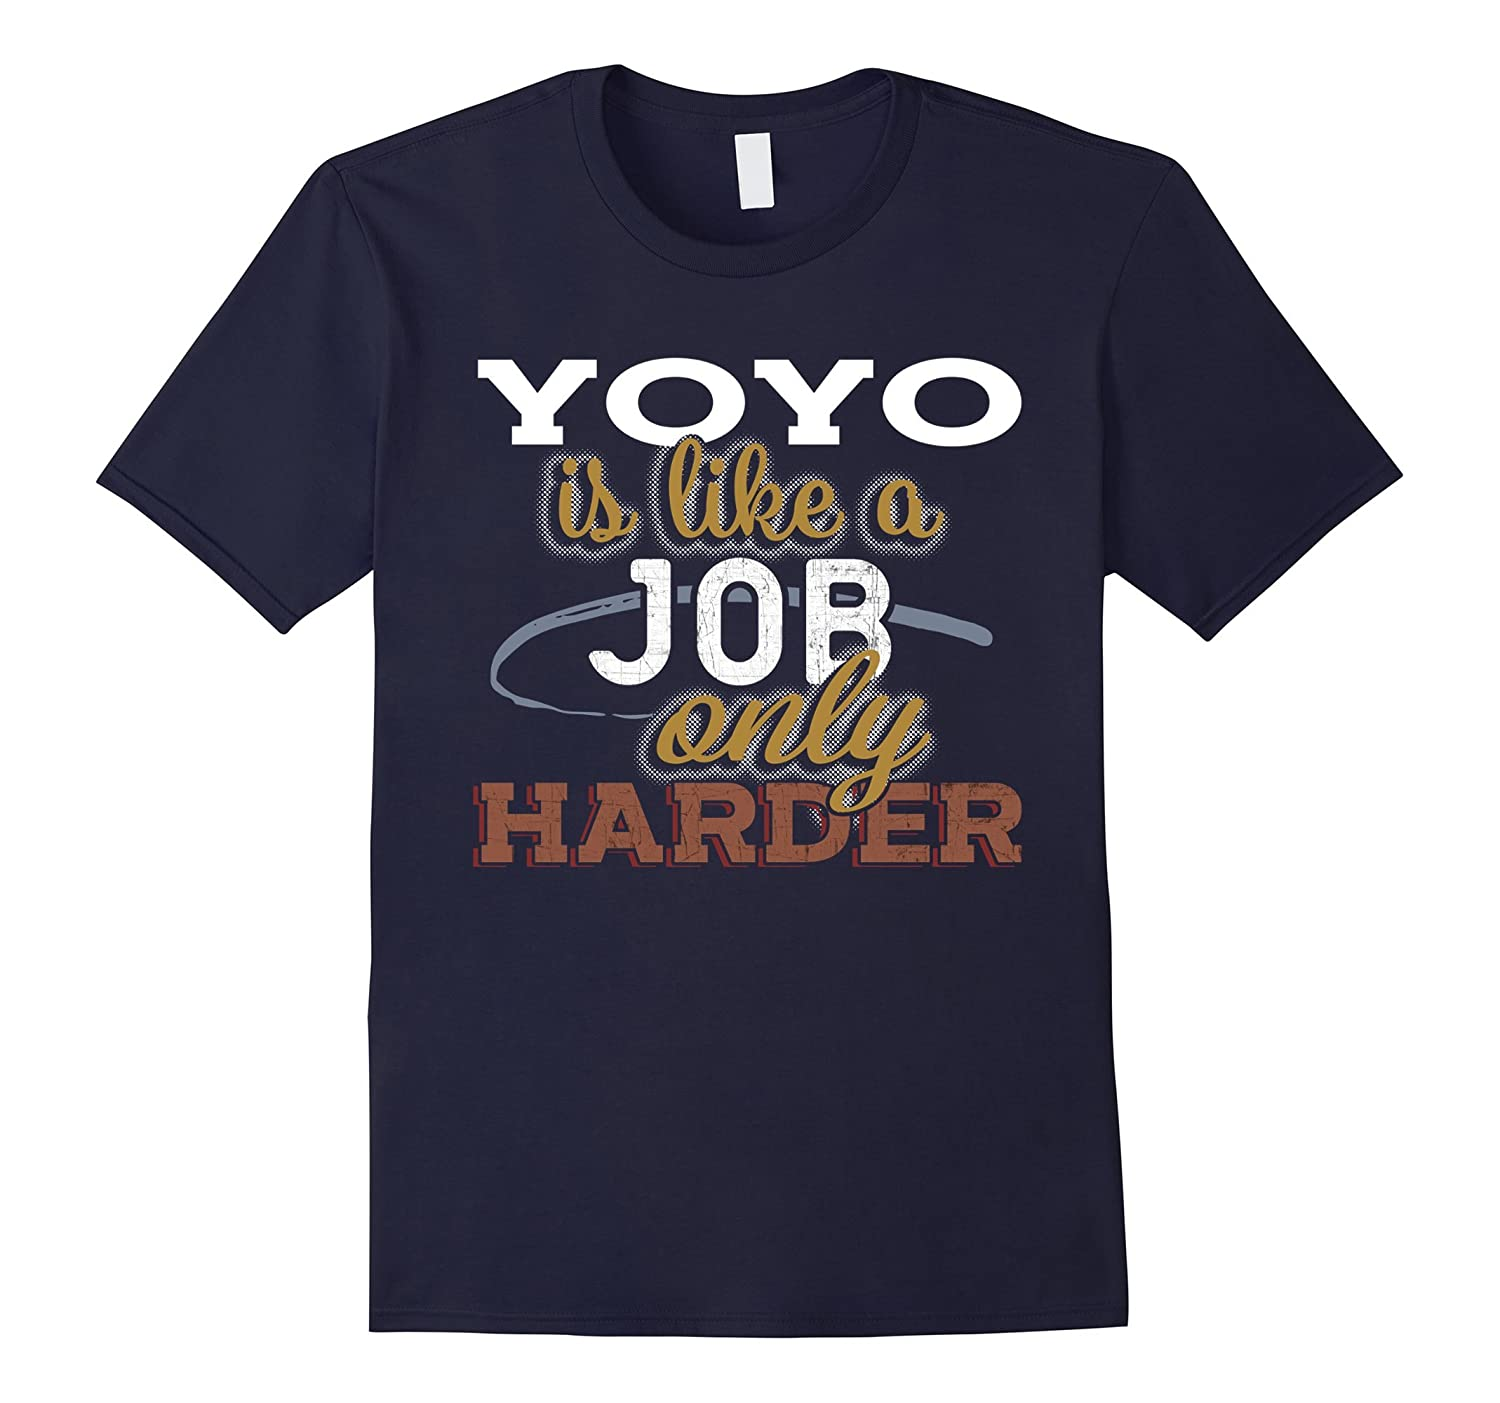 YoYo is Just Like a Job Only Harder T Shirt-TJ